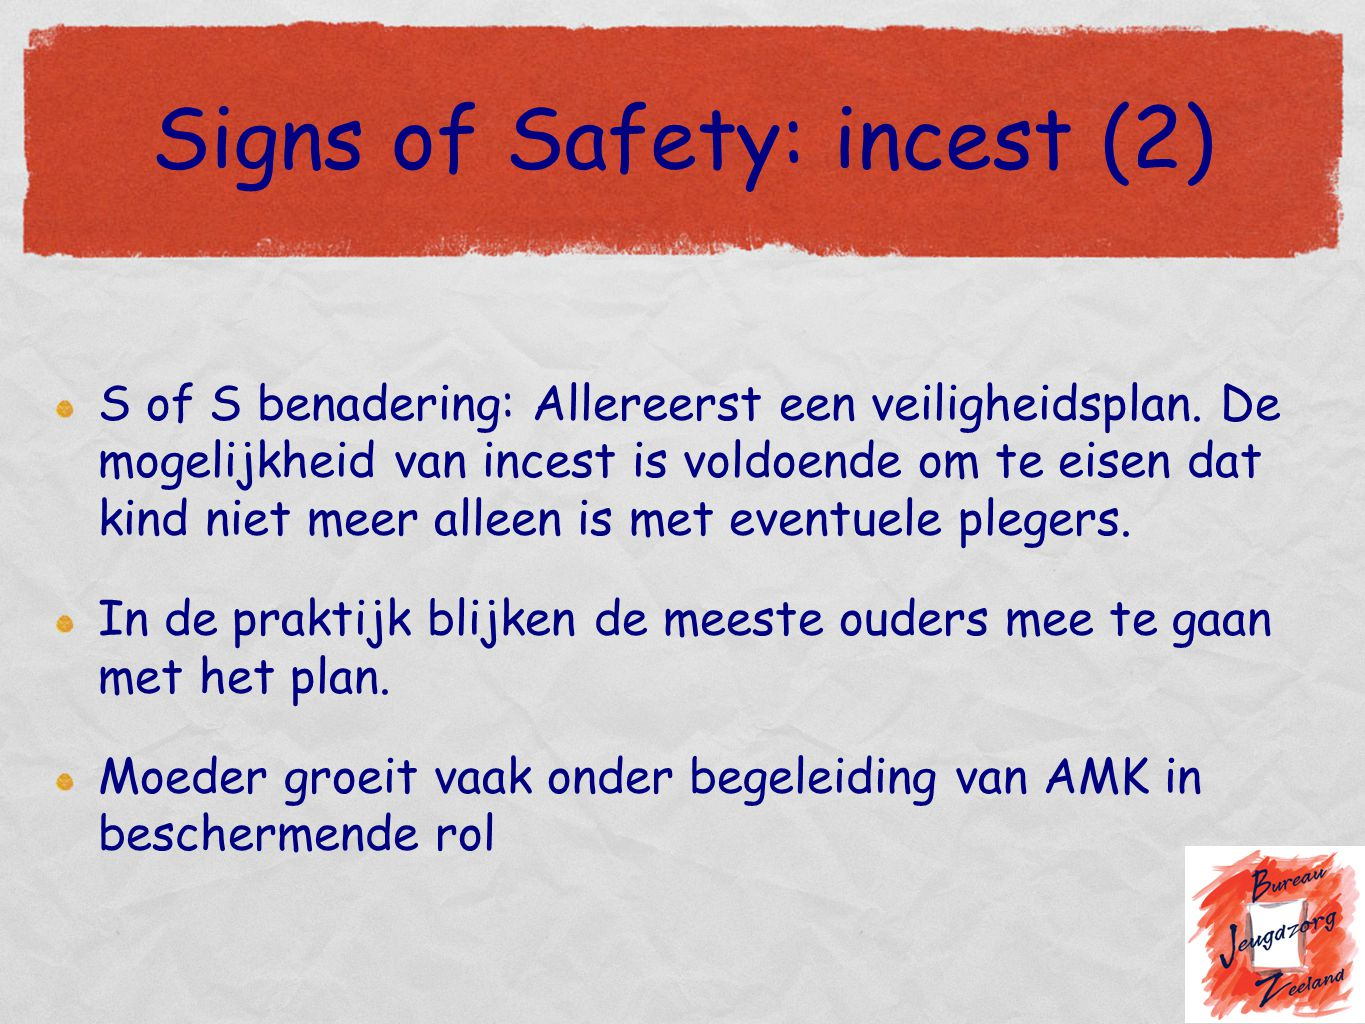 Signs of Safety: incest (2)